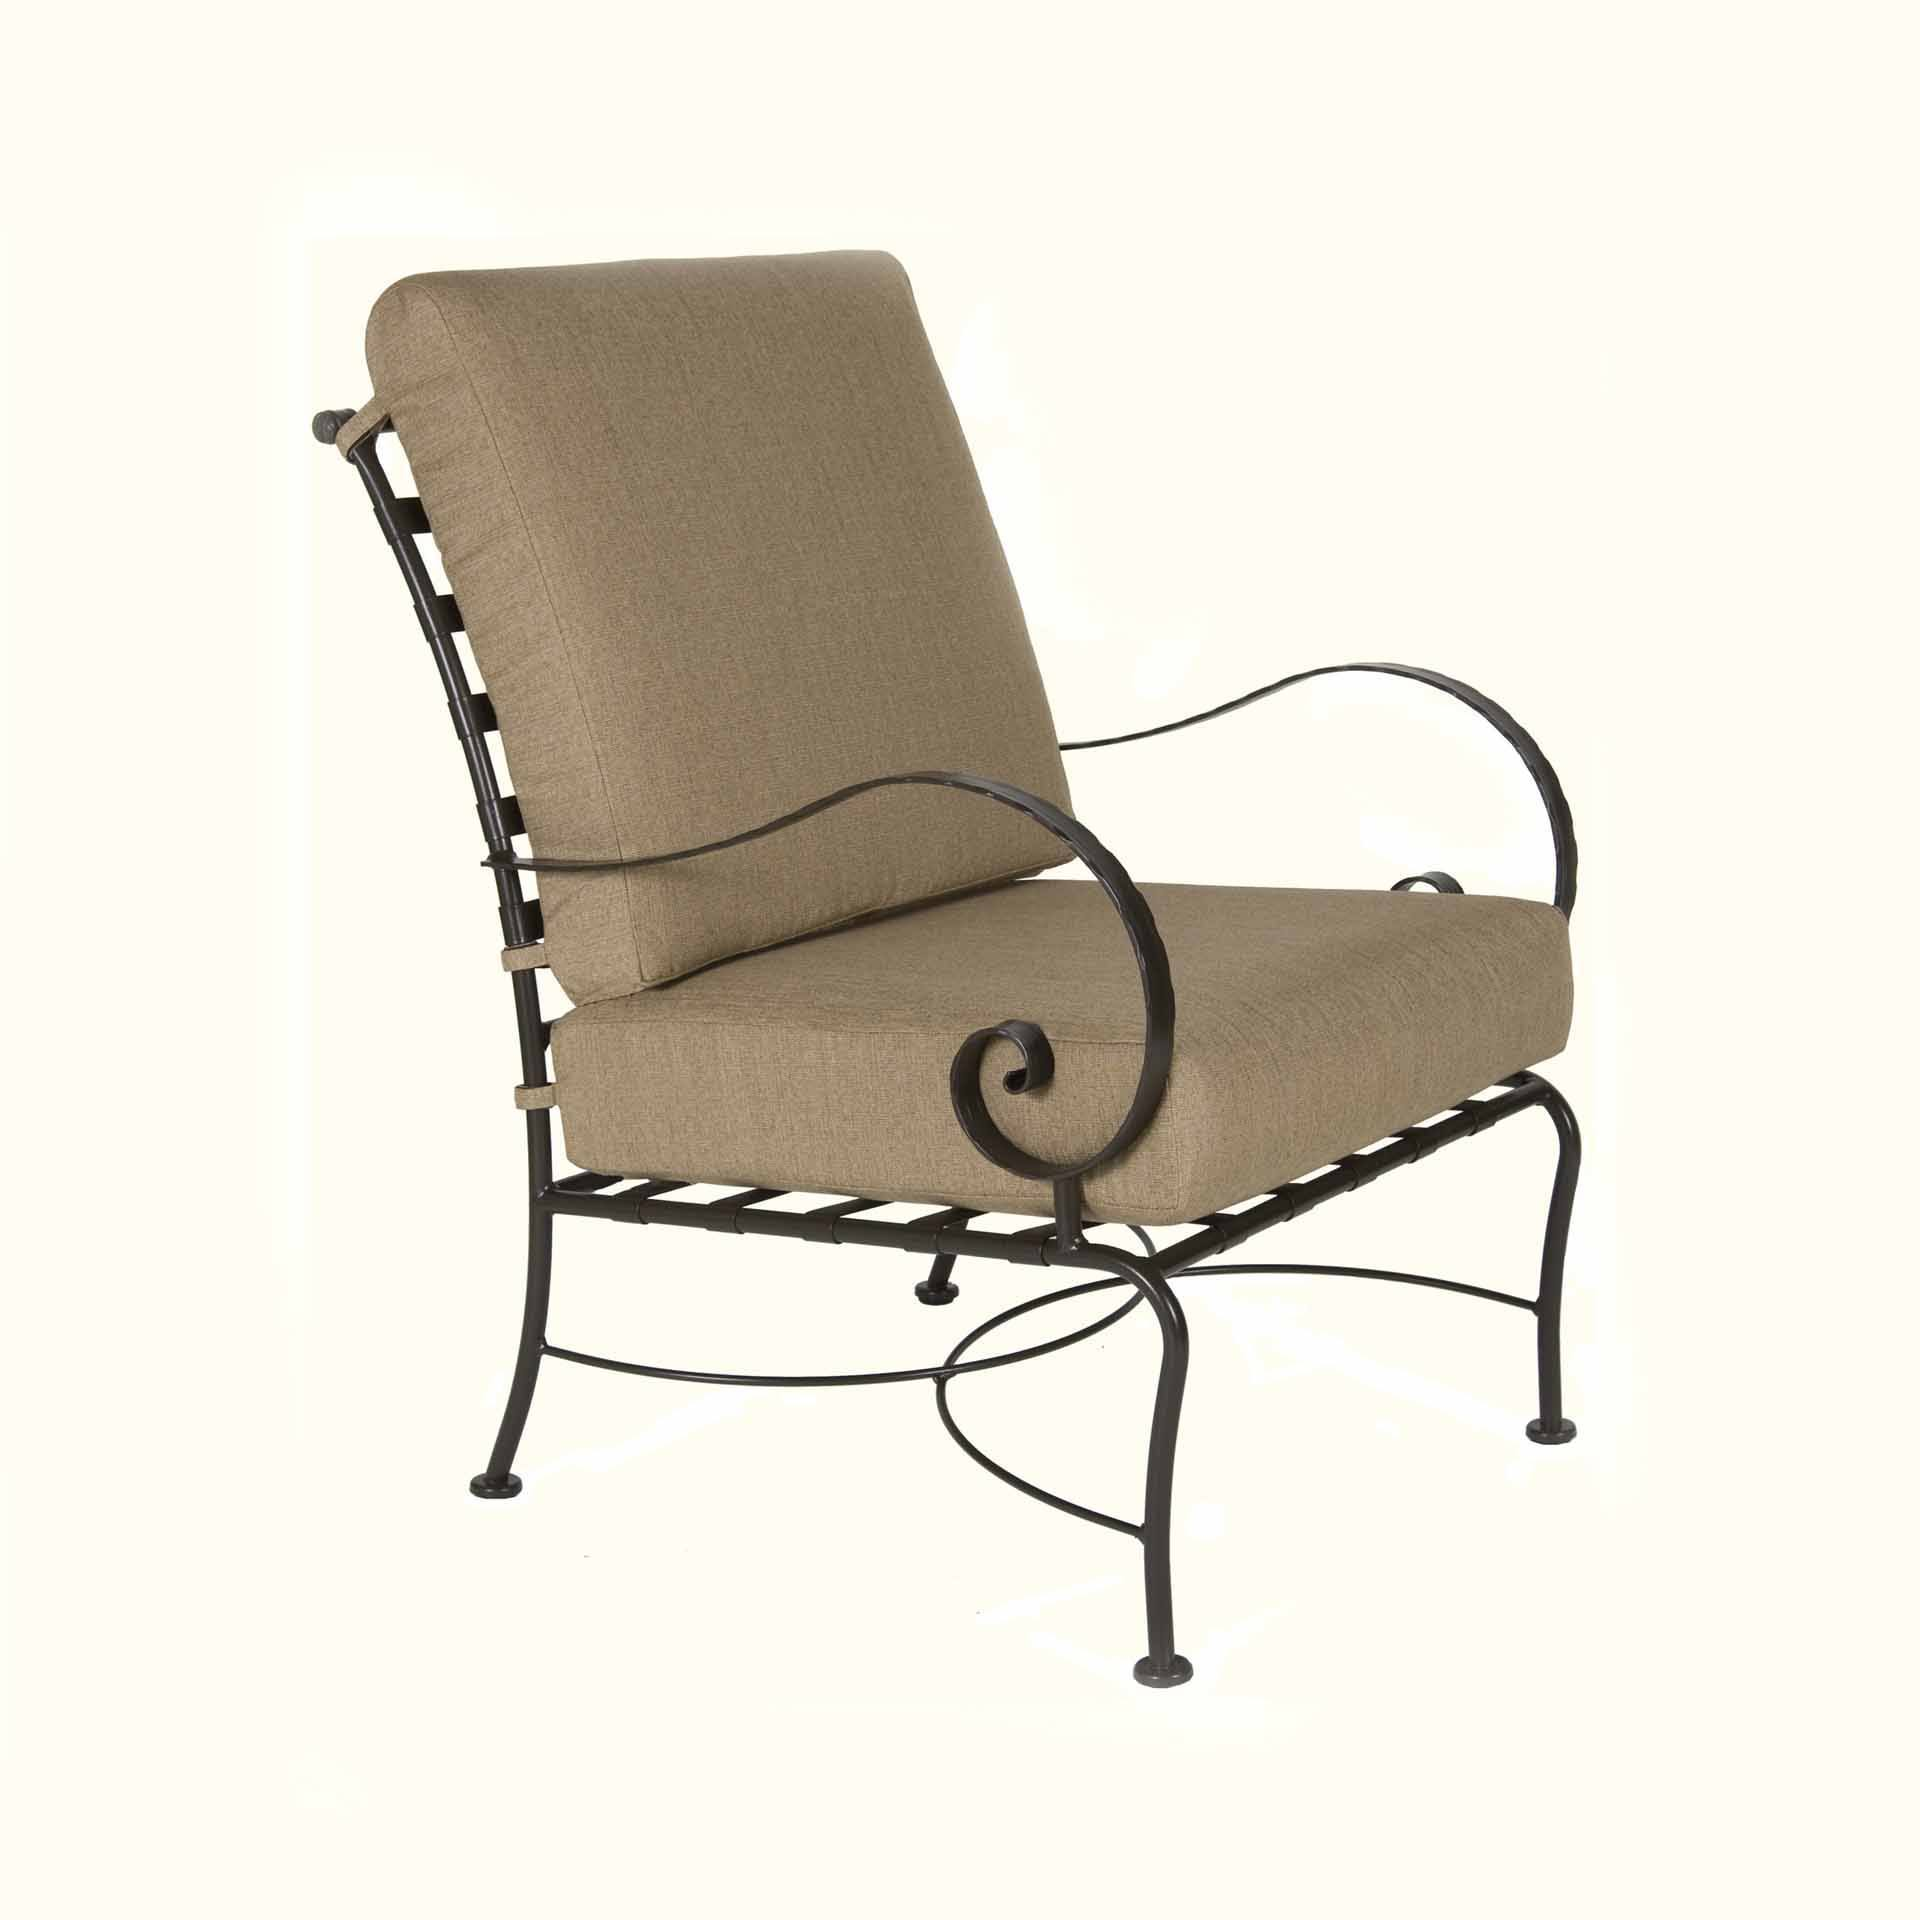 Ow Lee Classico Lounge Chair Leisure Living